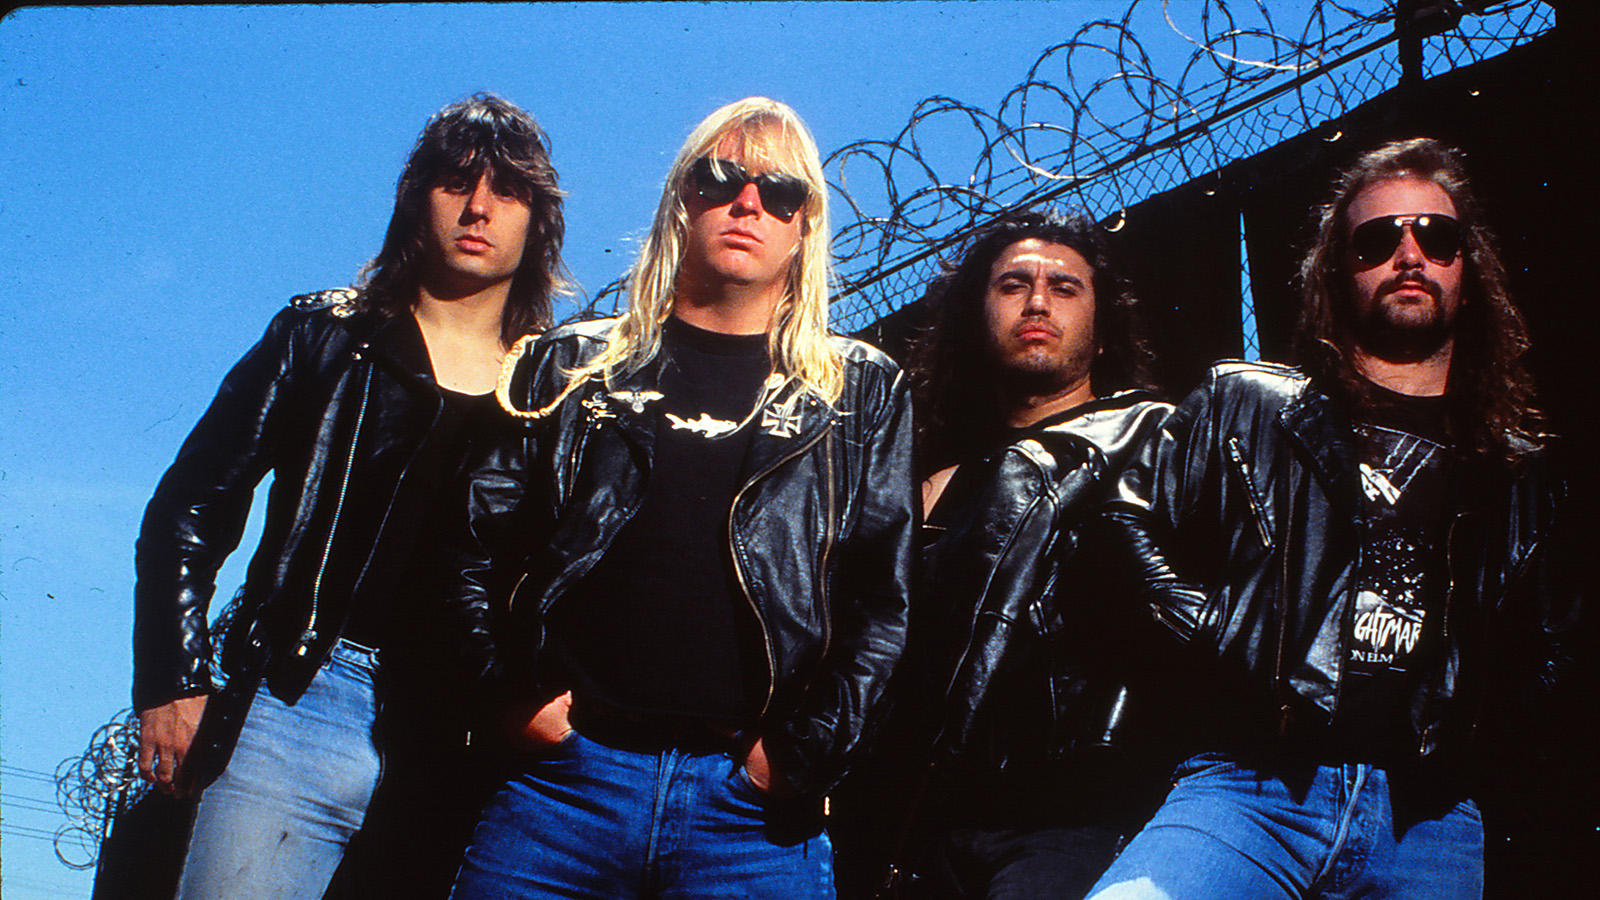 Fan Poll: 5 Greatest Thrash-Metal Albums of All Time